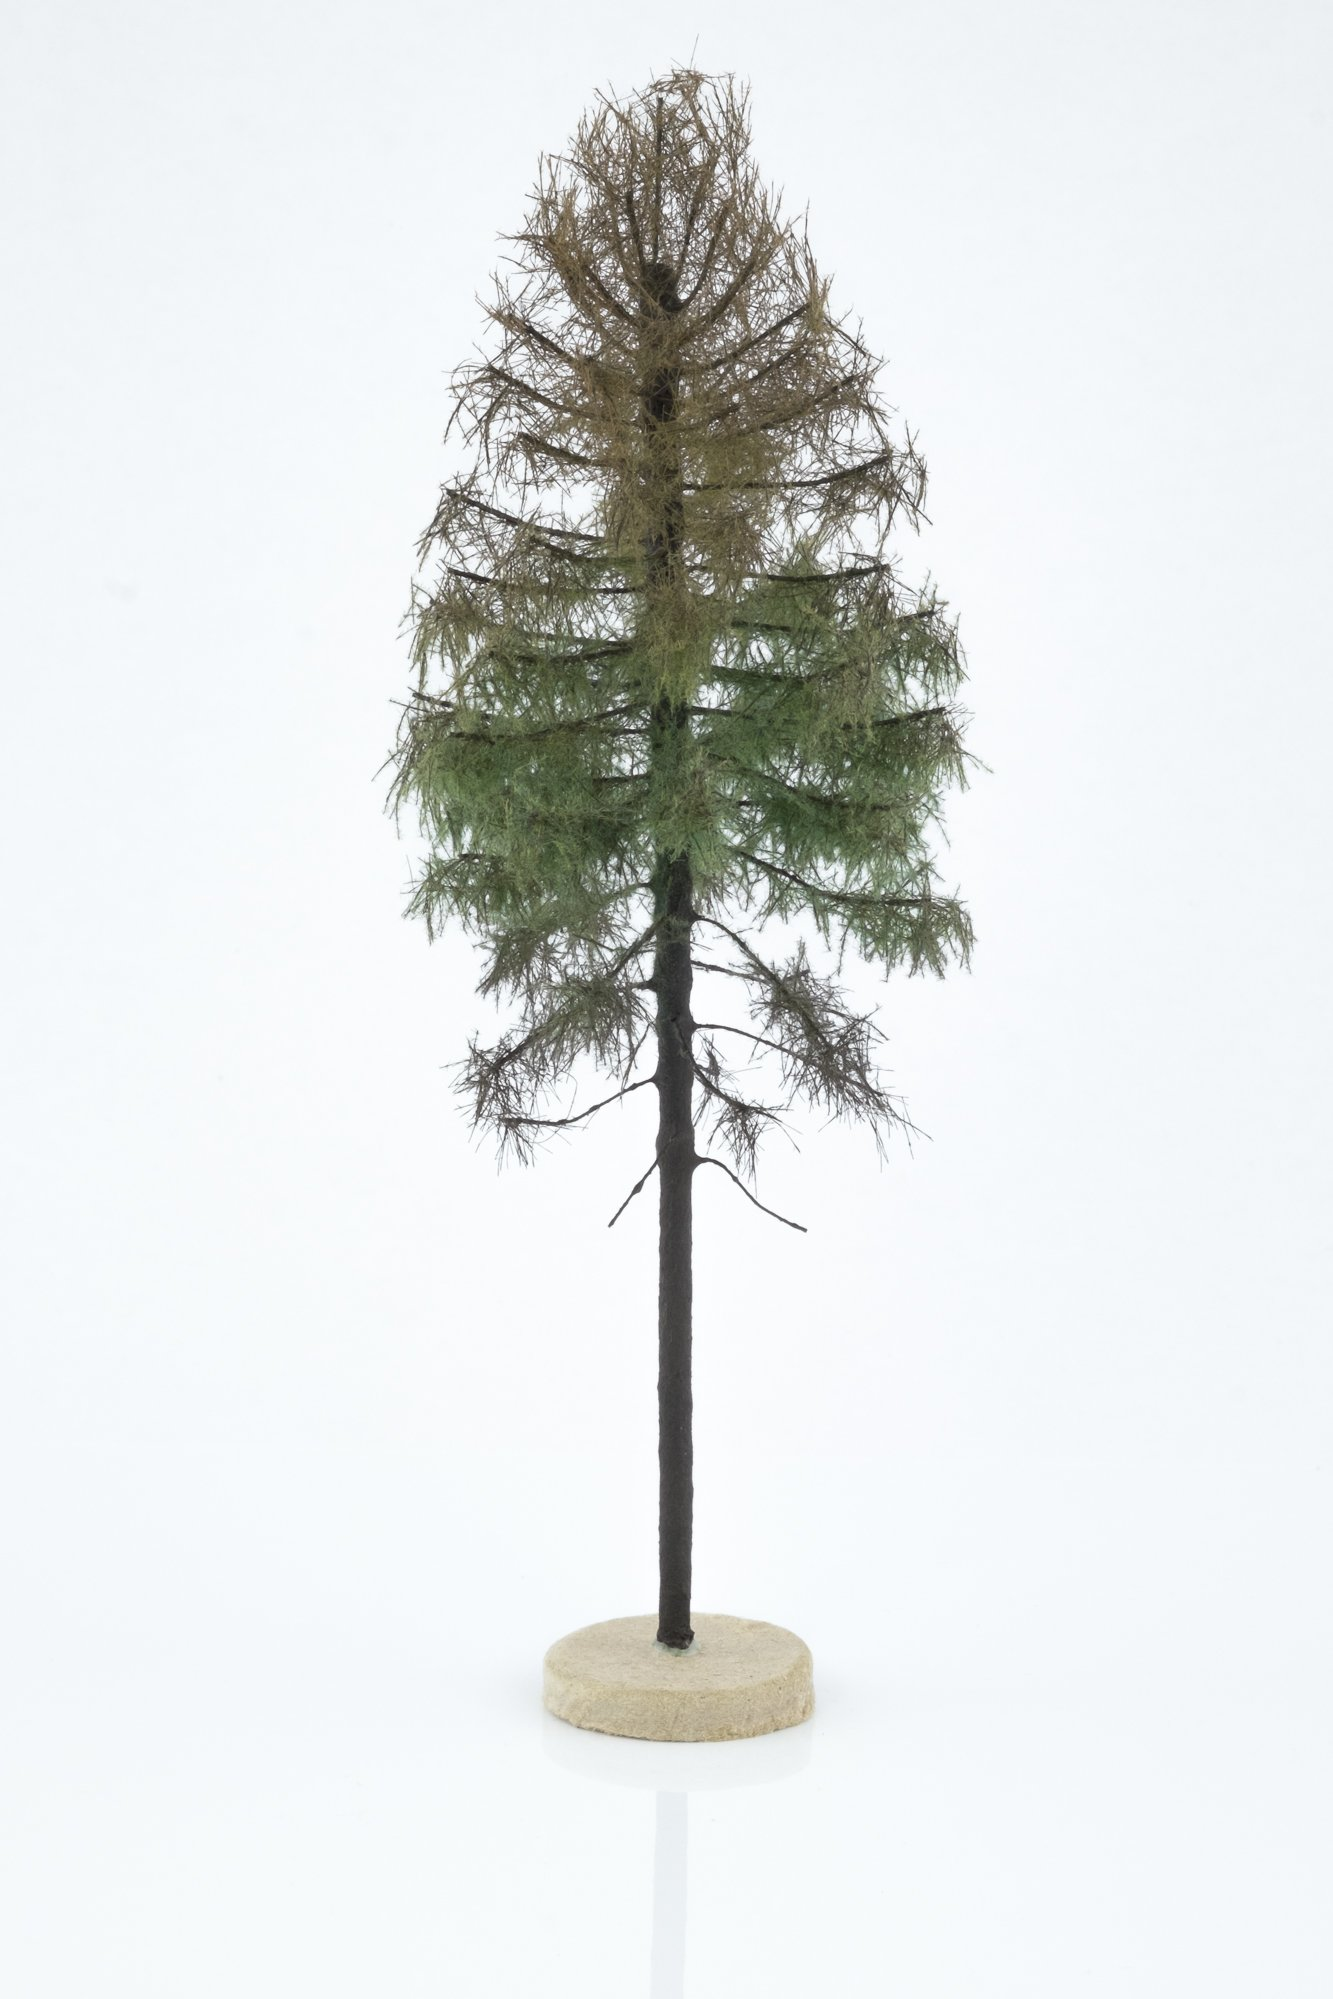 Hand-made, green, Dry larch tree model. Size between 18 and 20 cm. Made from high quality model supplies by Primo Models.